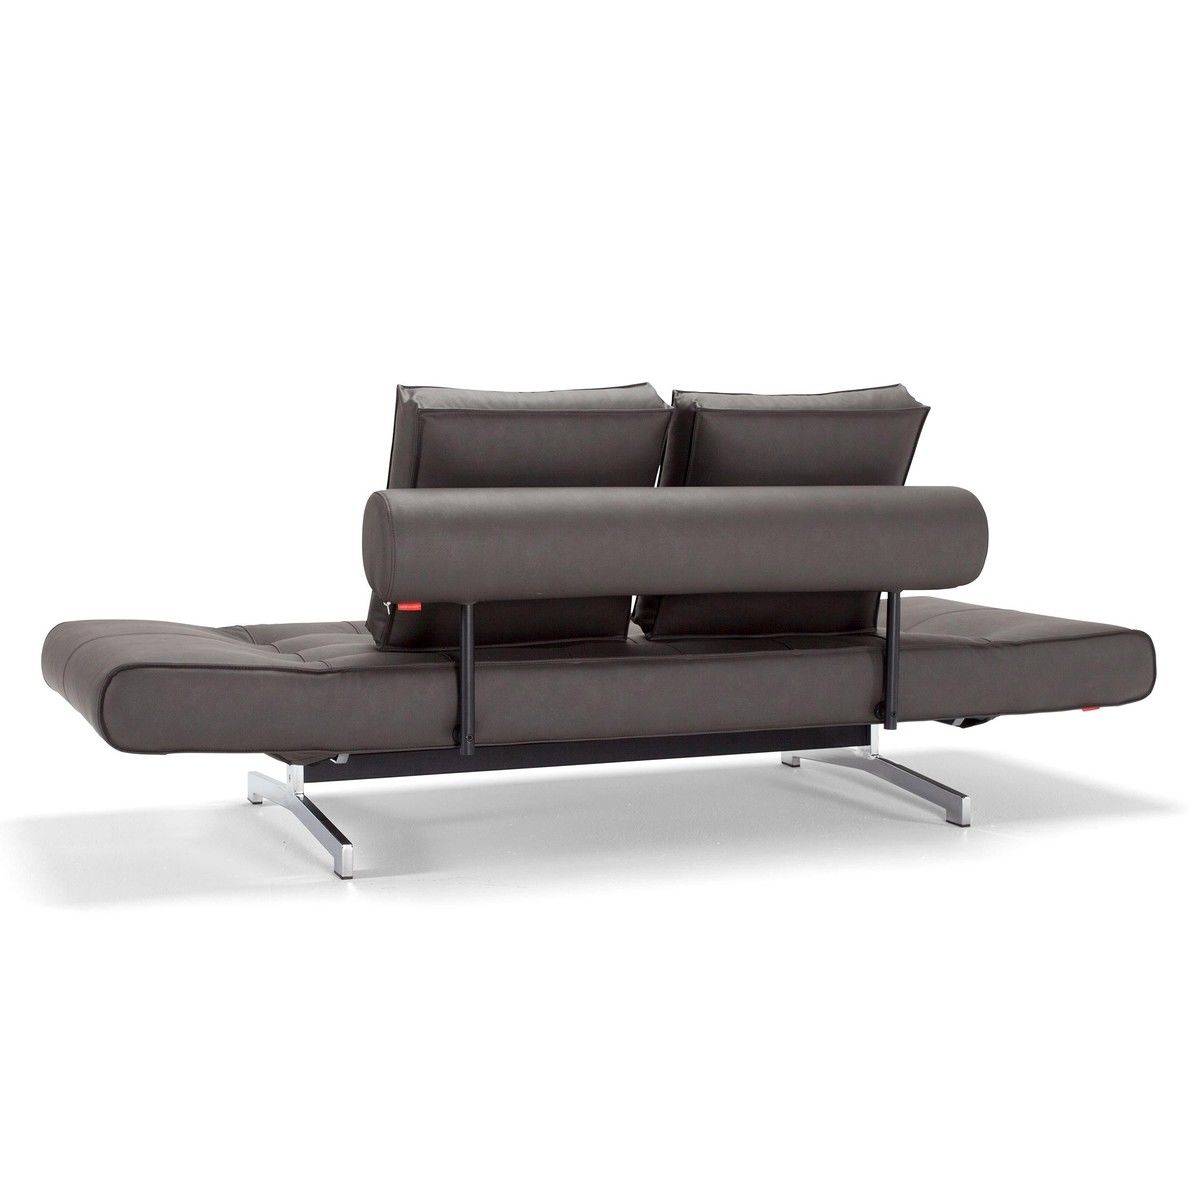 spanish sofa brand craftmaster ghia artificial leather bed innovation